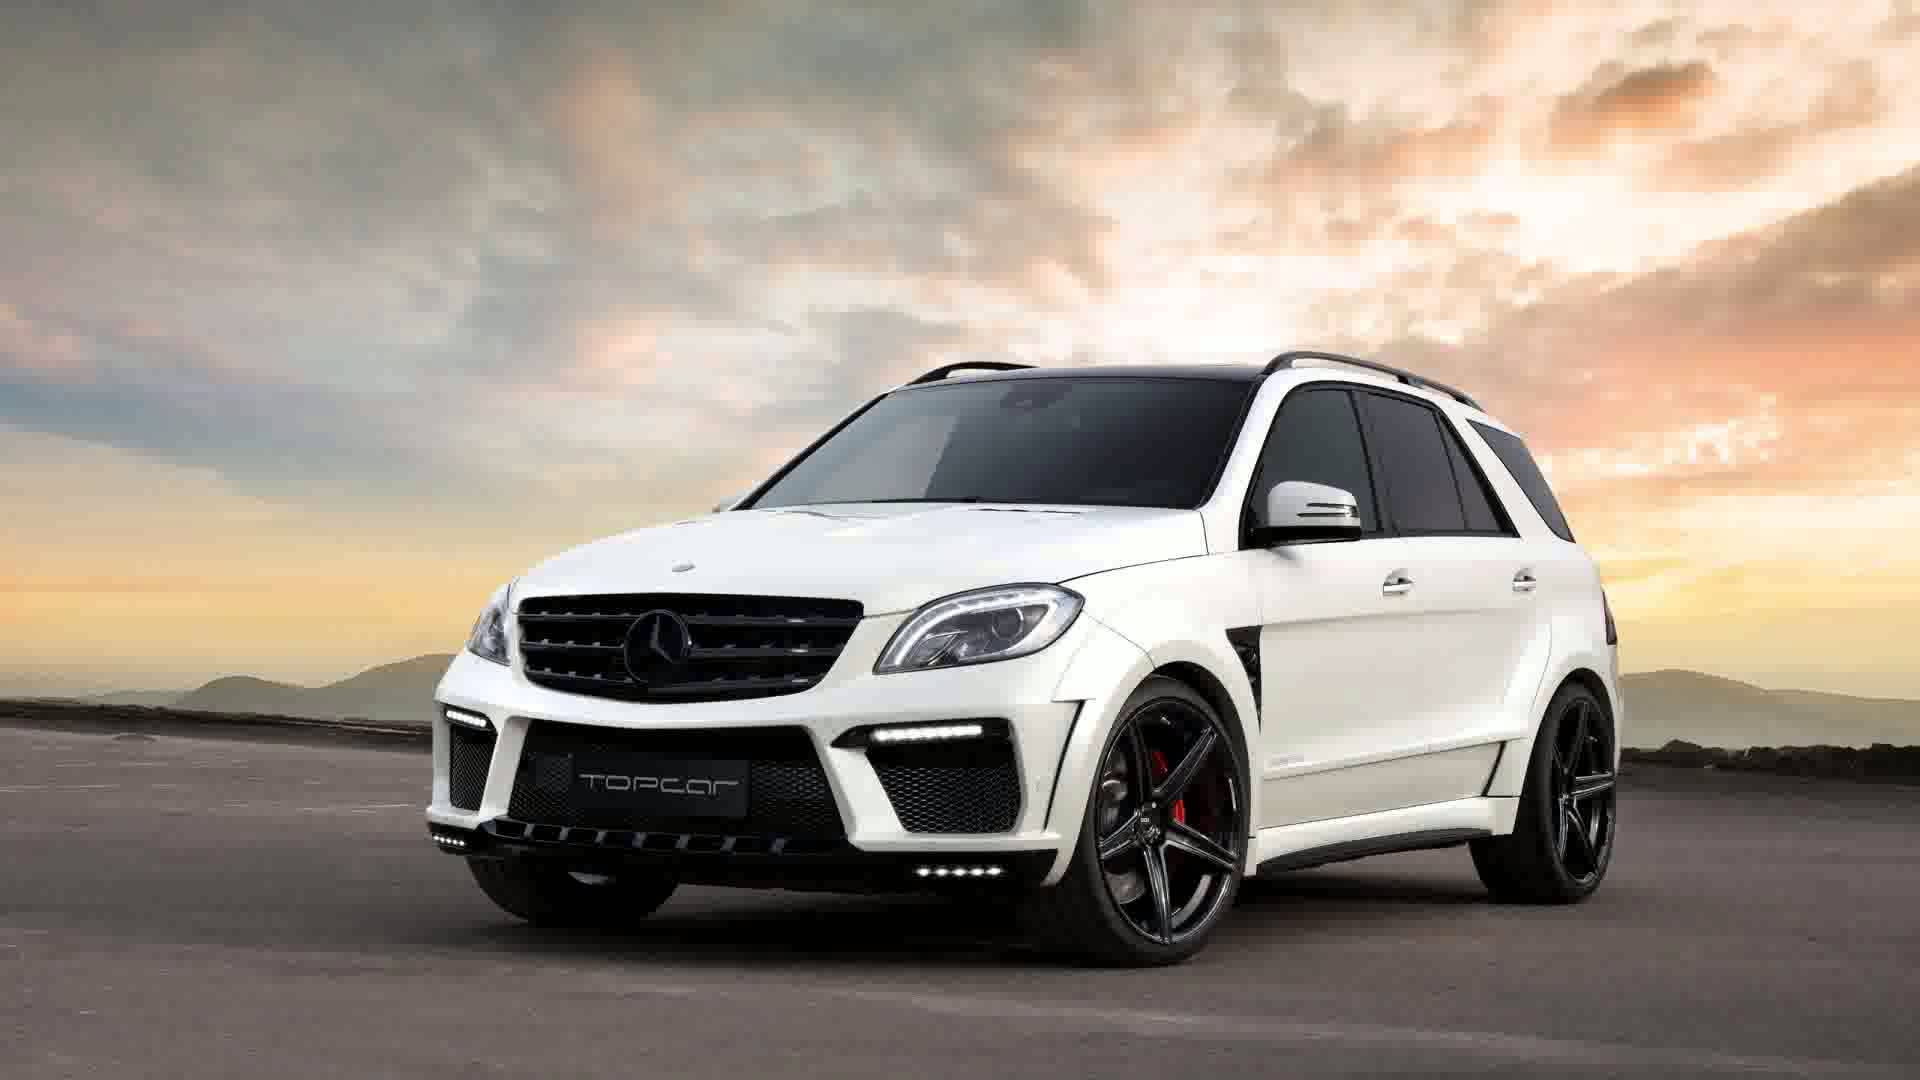 Mercedes benz m class ml63 amg 2015 suv drive for Mercedes benz average price